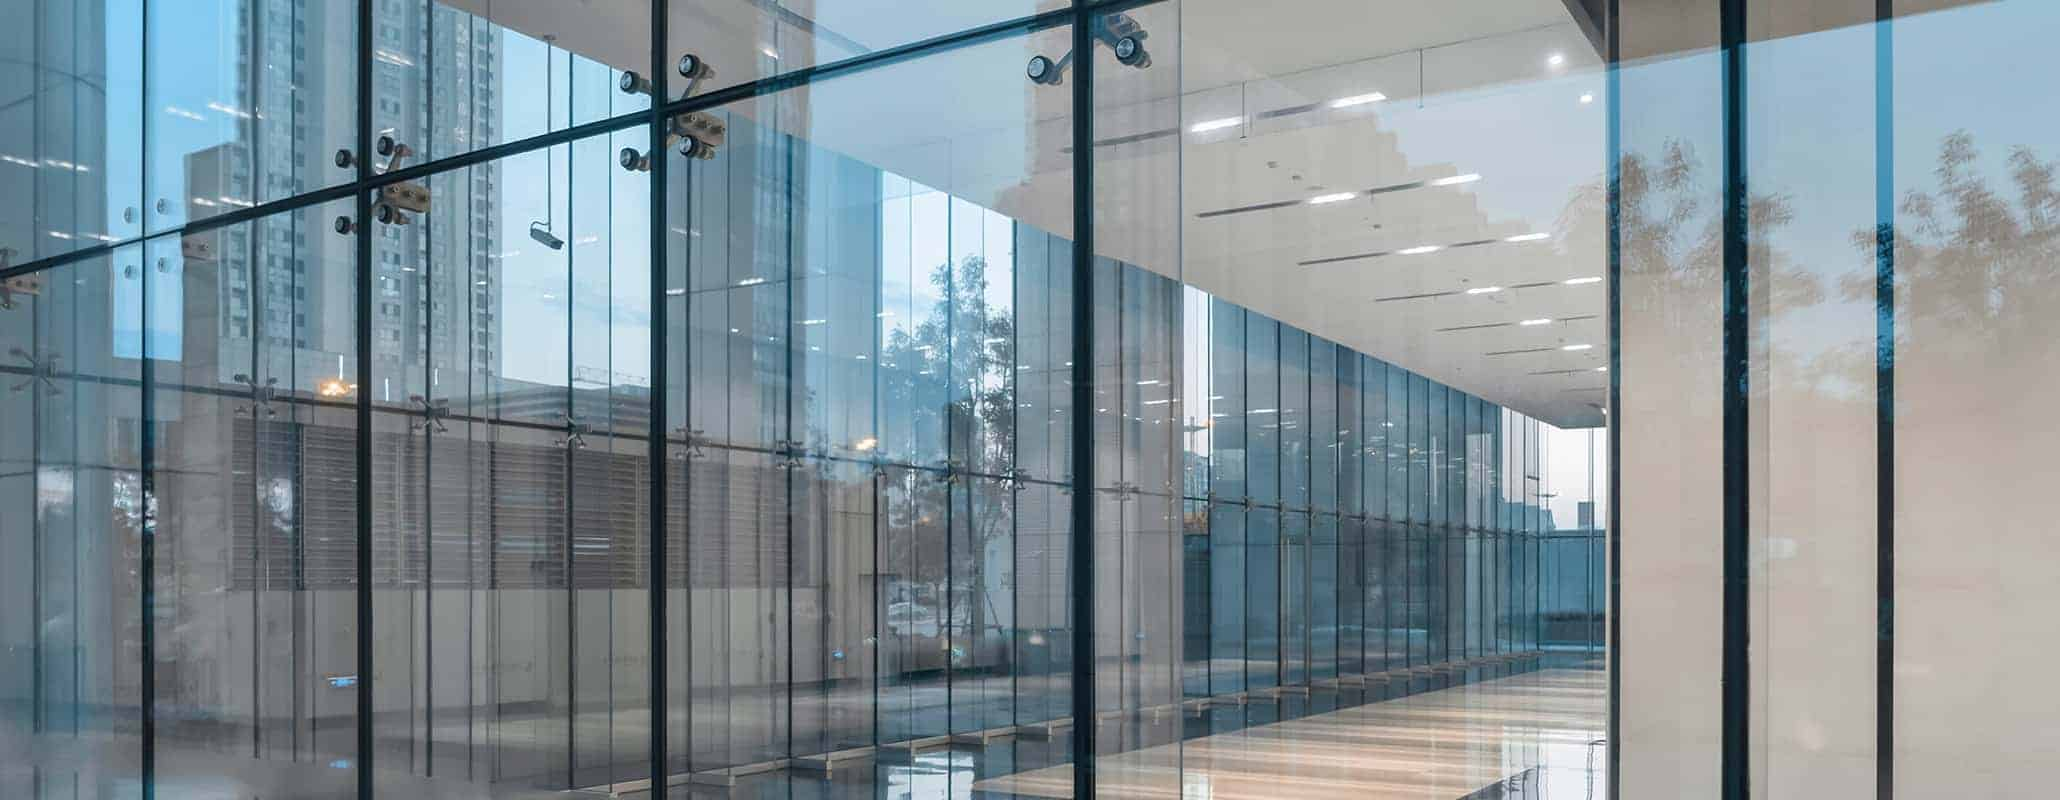 An empty room encased in Aldora all-glass entry doors looking out on a city sidewalk.